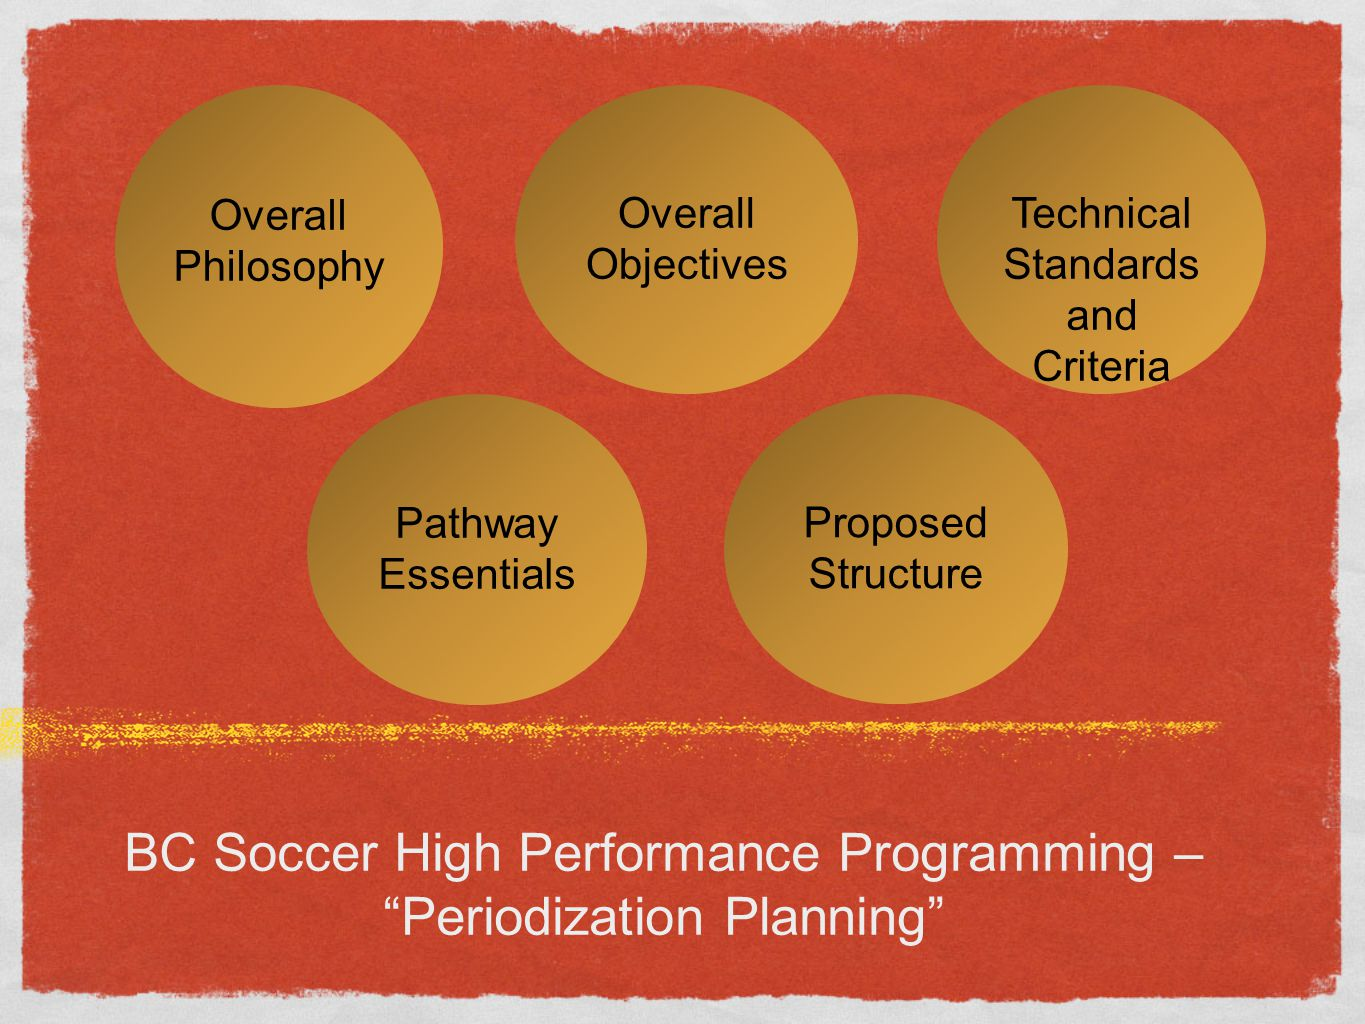 BC Soccer High Performance Programming – Periodization Planning